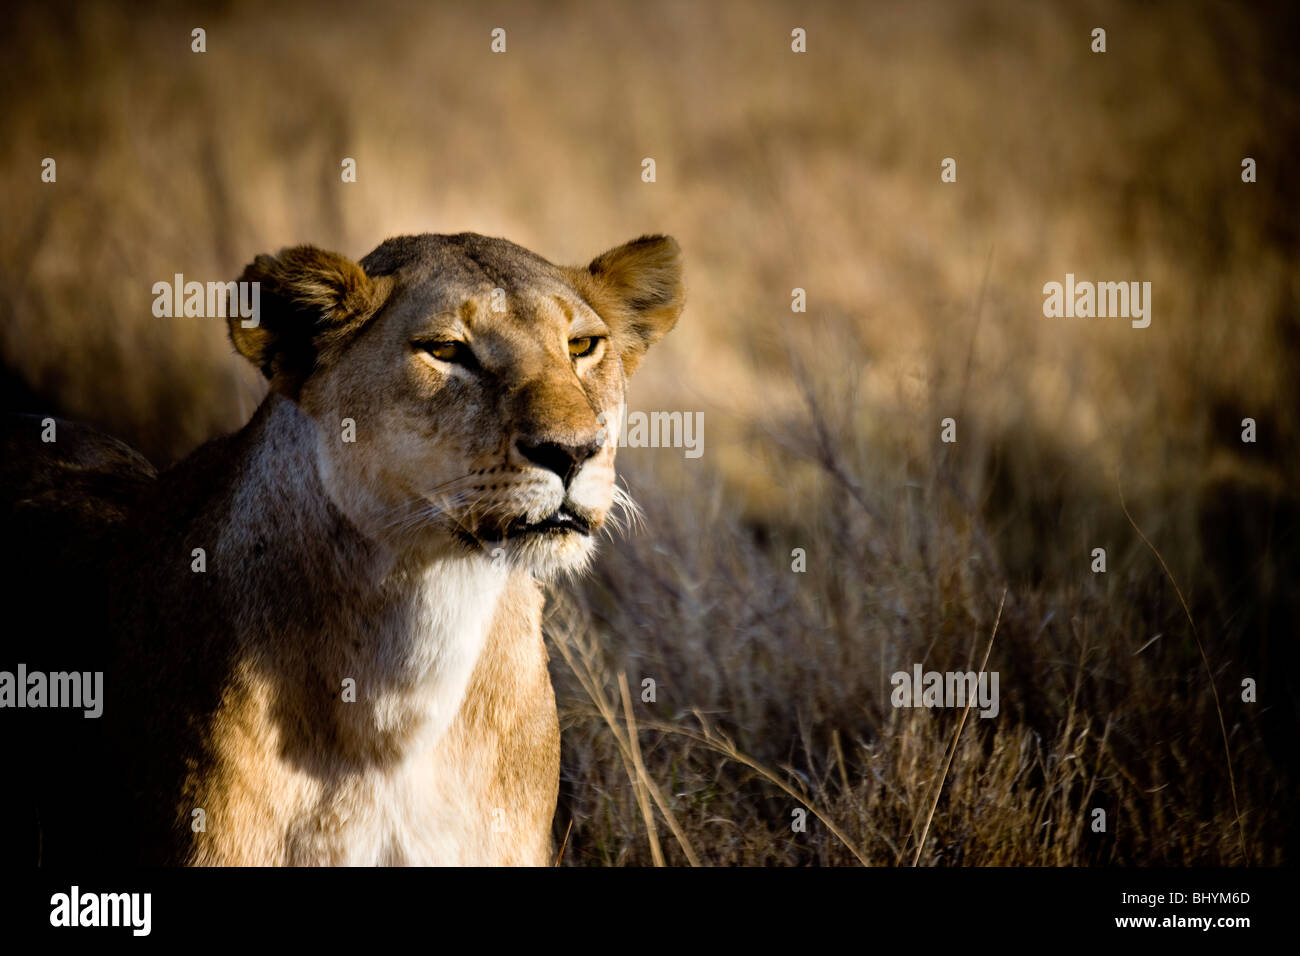 Lioness, Serengeti NP, Tanzania, East Africa - Stock Image